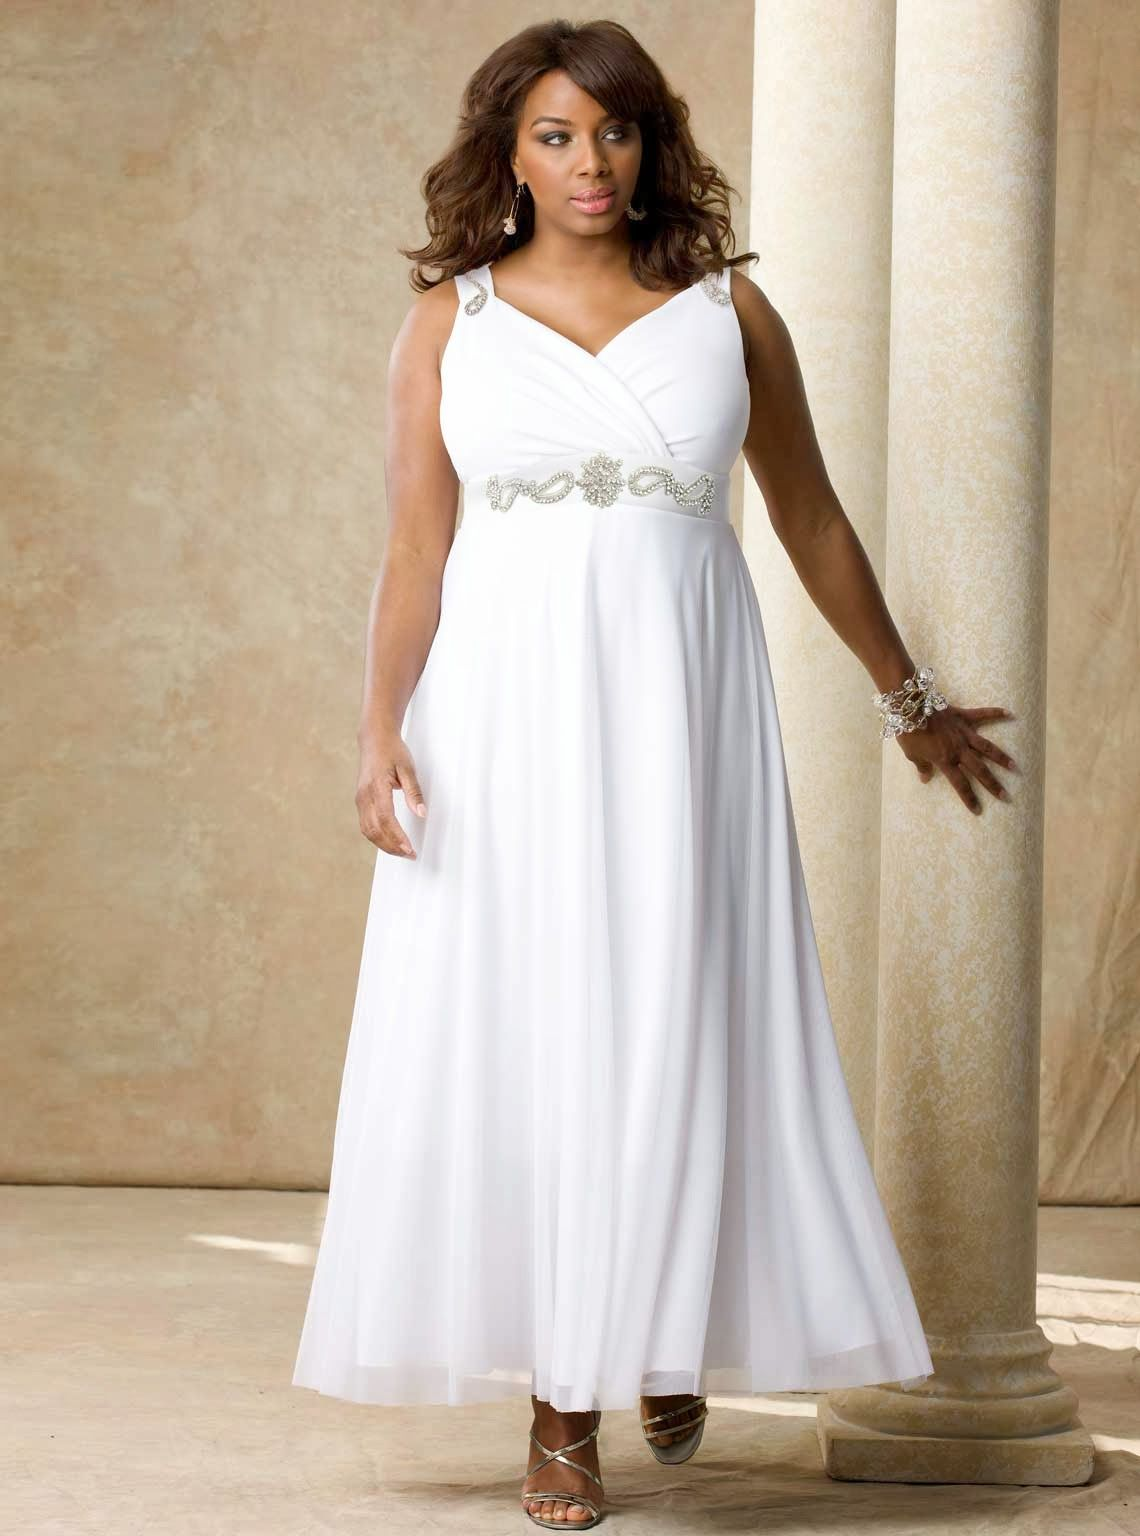 Plus Size Homecoming Dresses Under 50 – DACC